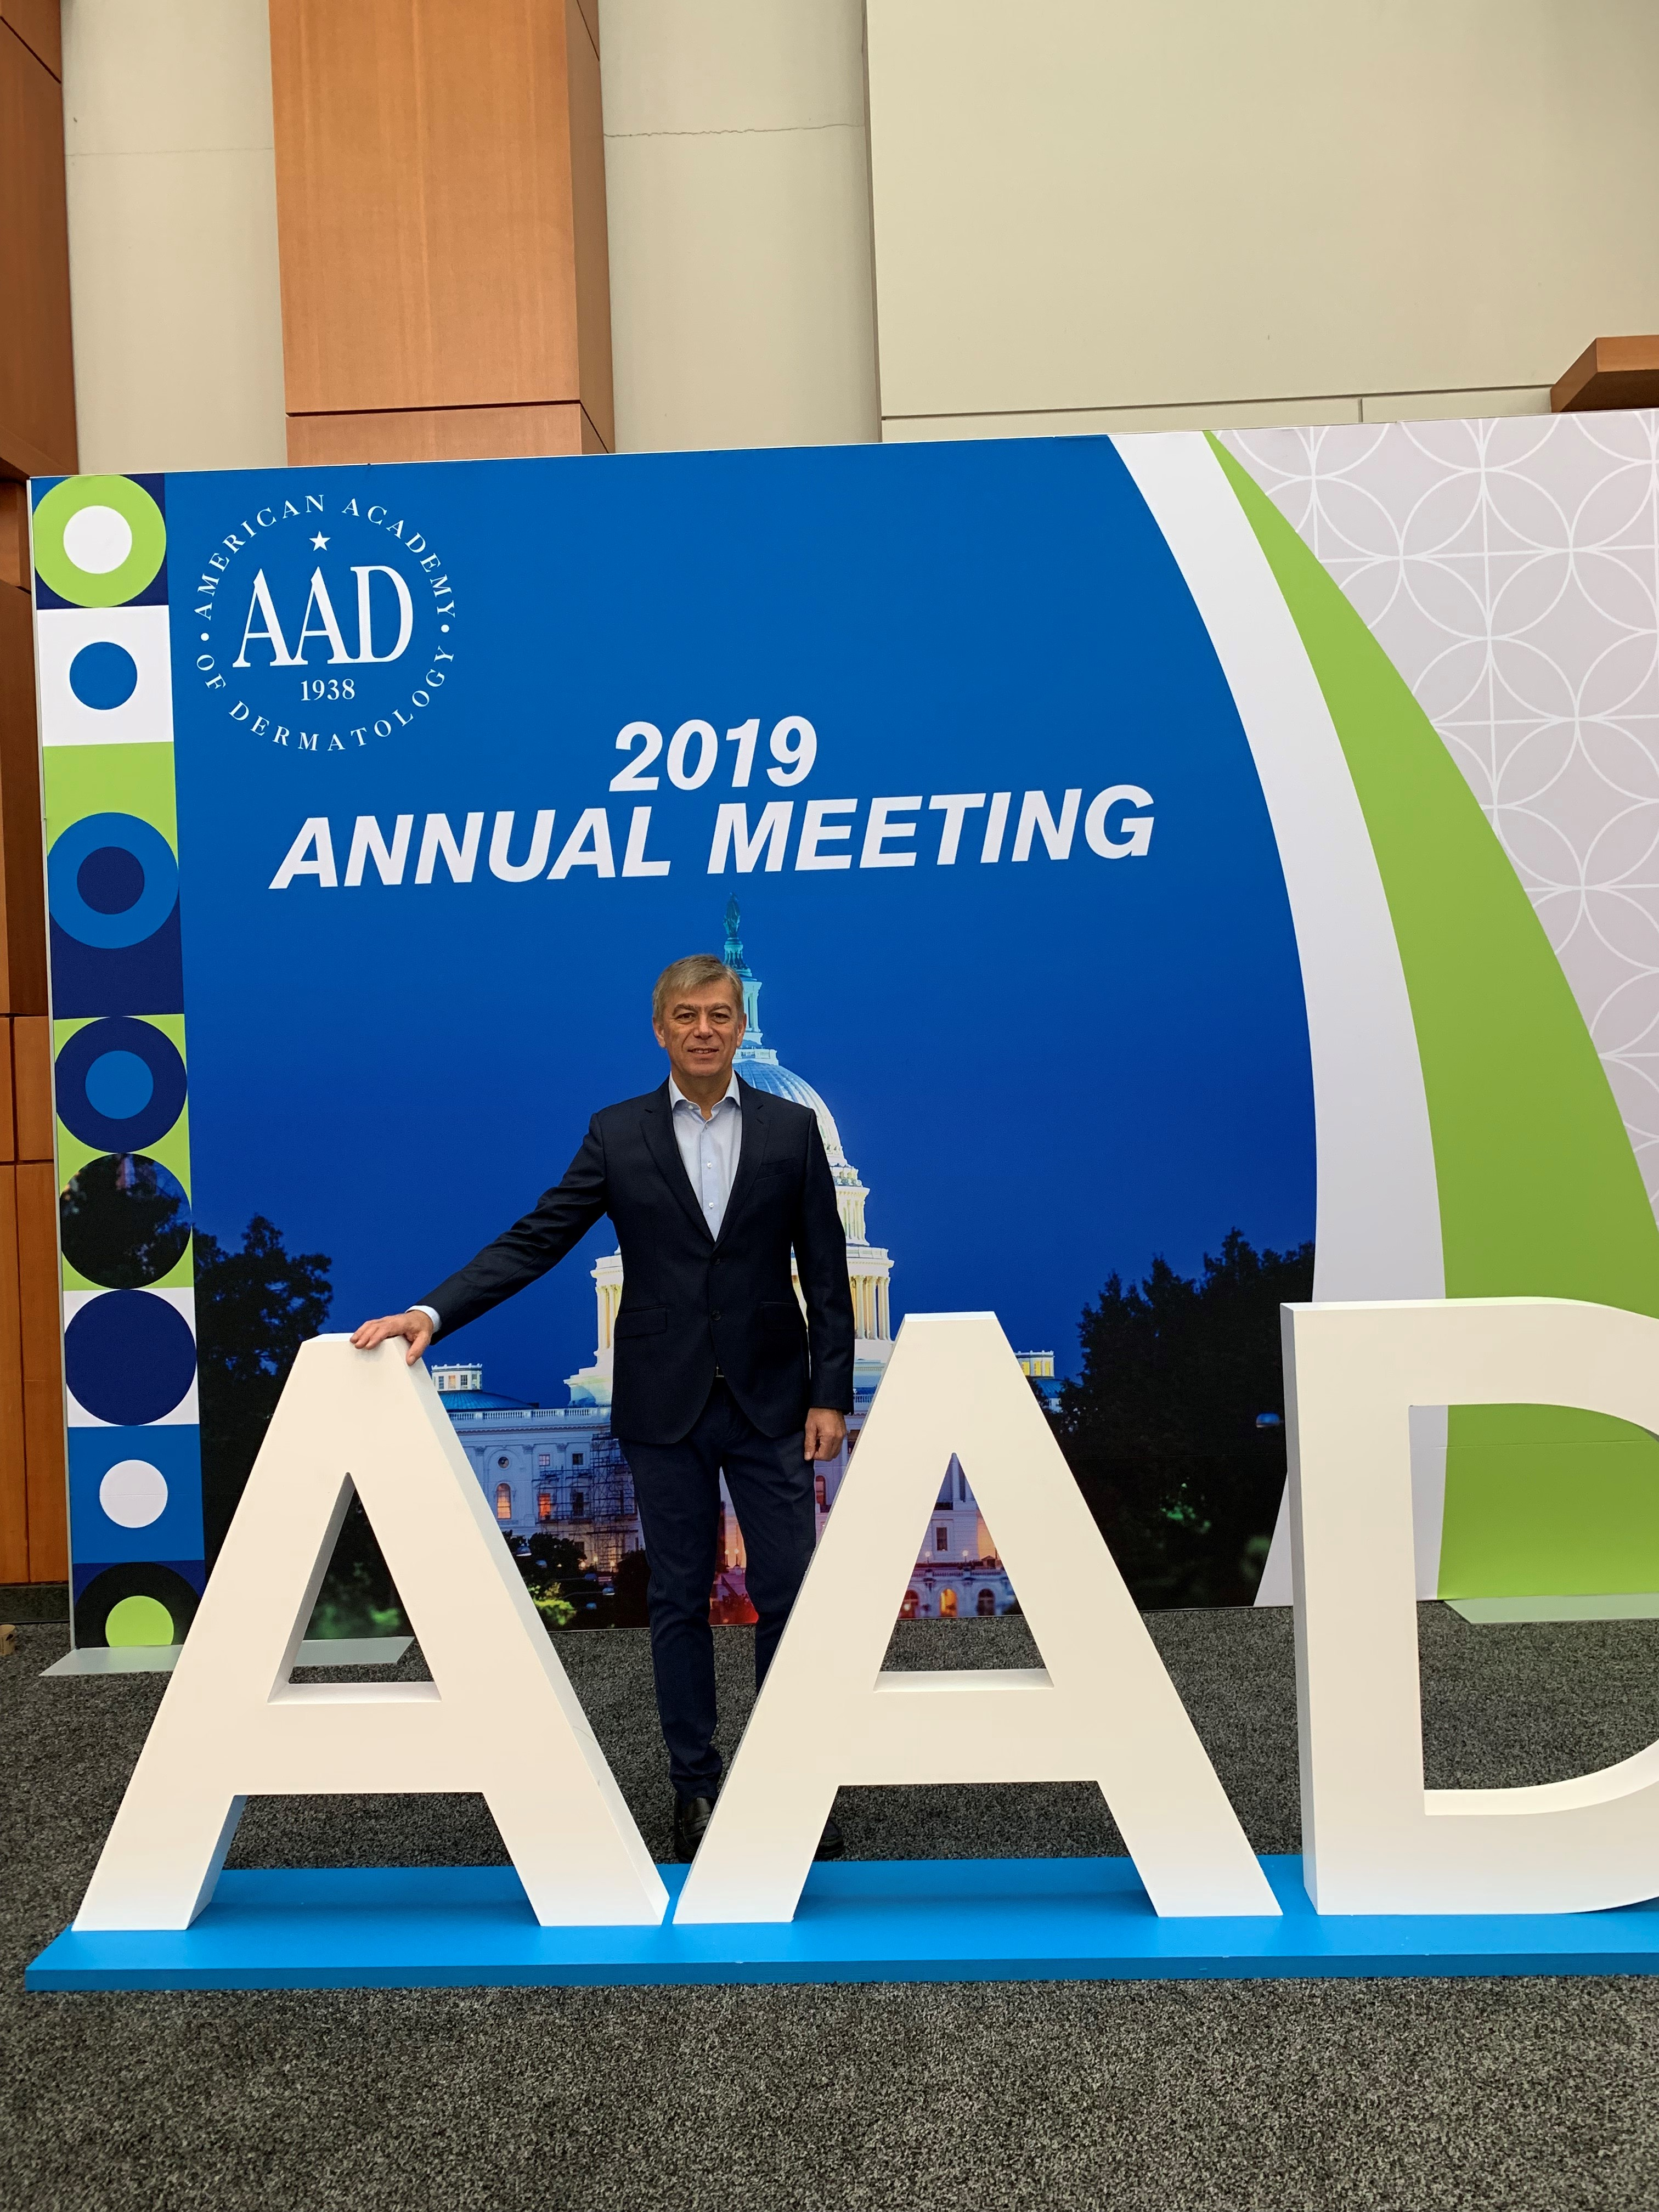 DR.LOPEZ ESTEBARANZ AAD WASHINGTON 2019